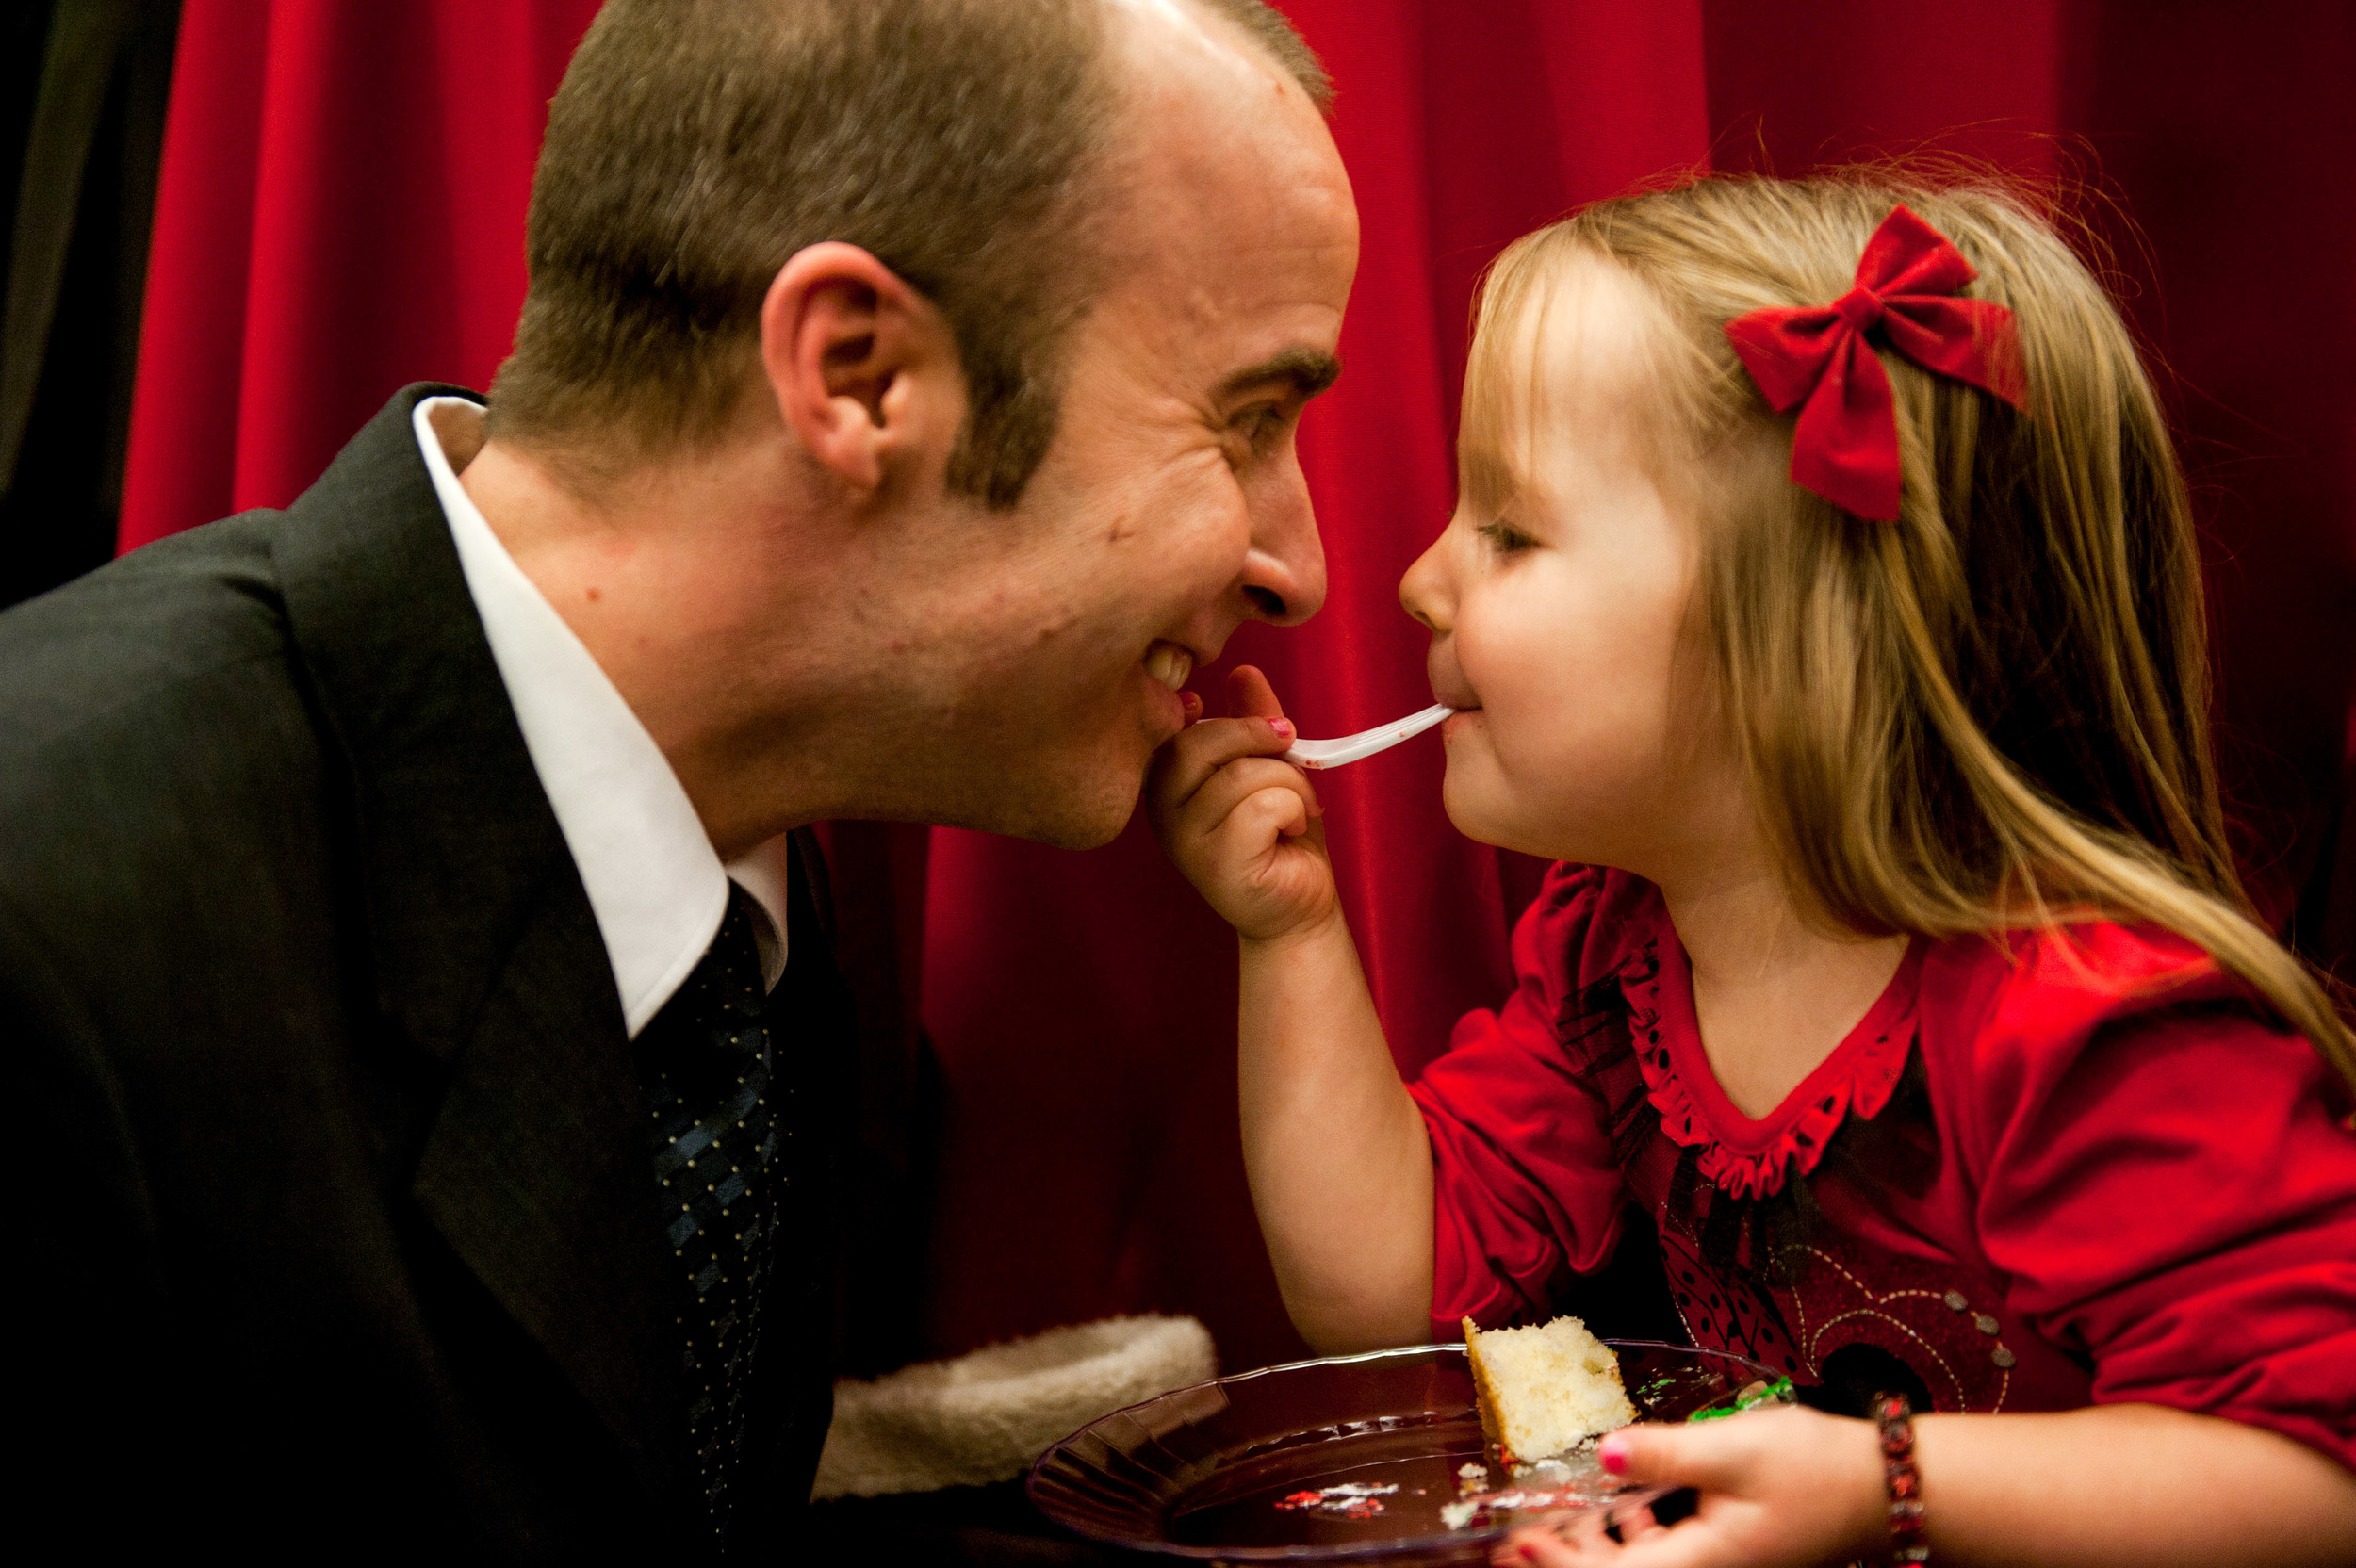 Natalie and Lance Schloot share a piece of cake at the Triangle Father Daughter Dance in Raleigh, N.C. on Saturday February 2, 2013.